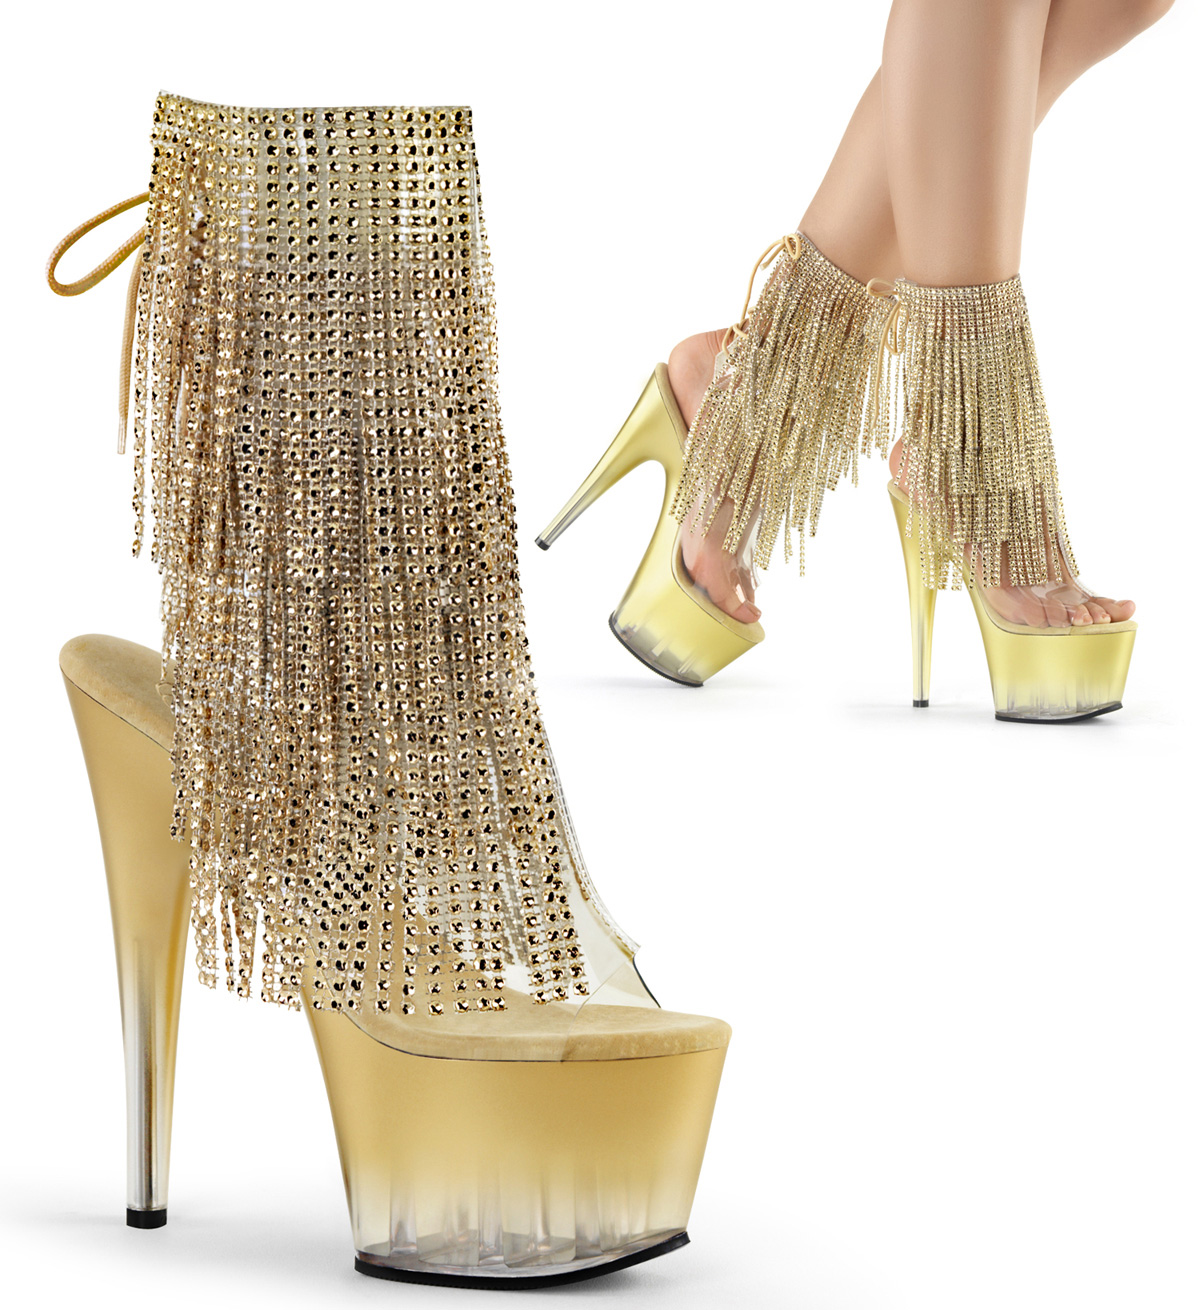 Gold Chrome Platform Heel Diamante Embellished Party Ankle Boots